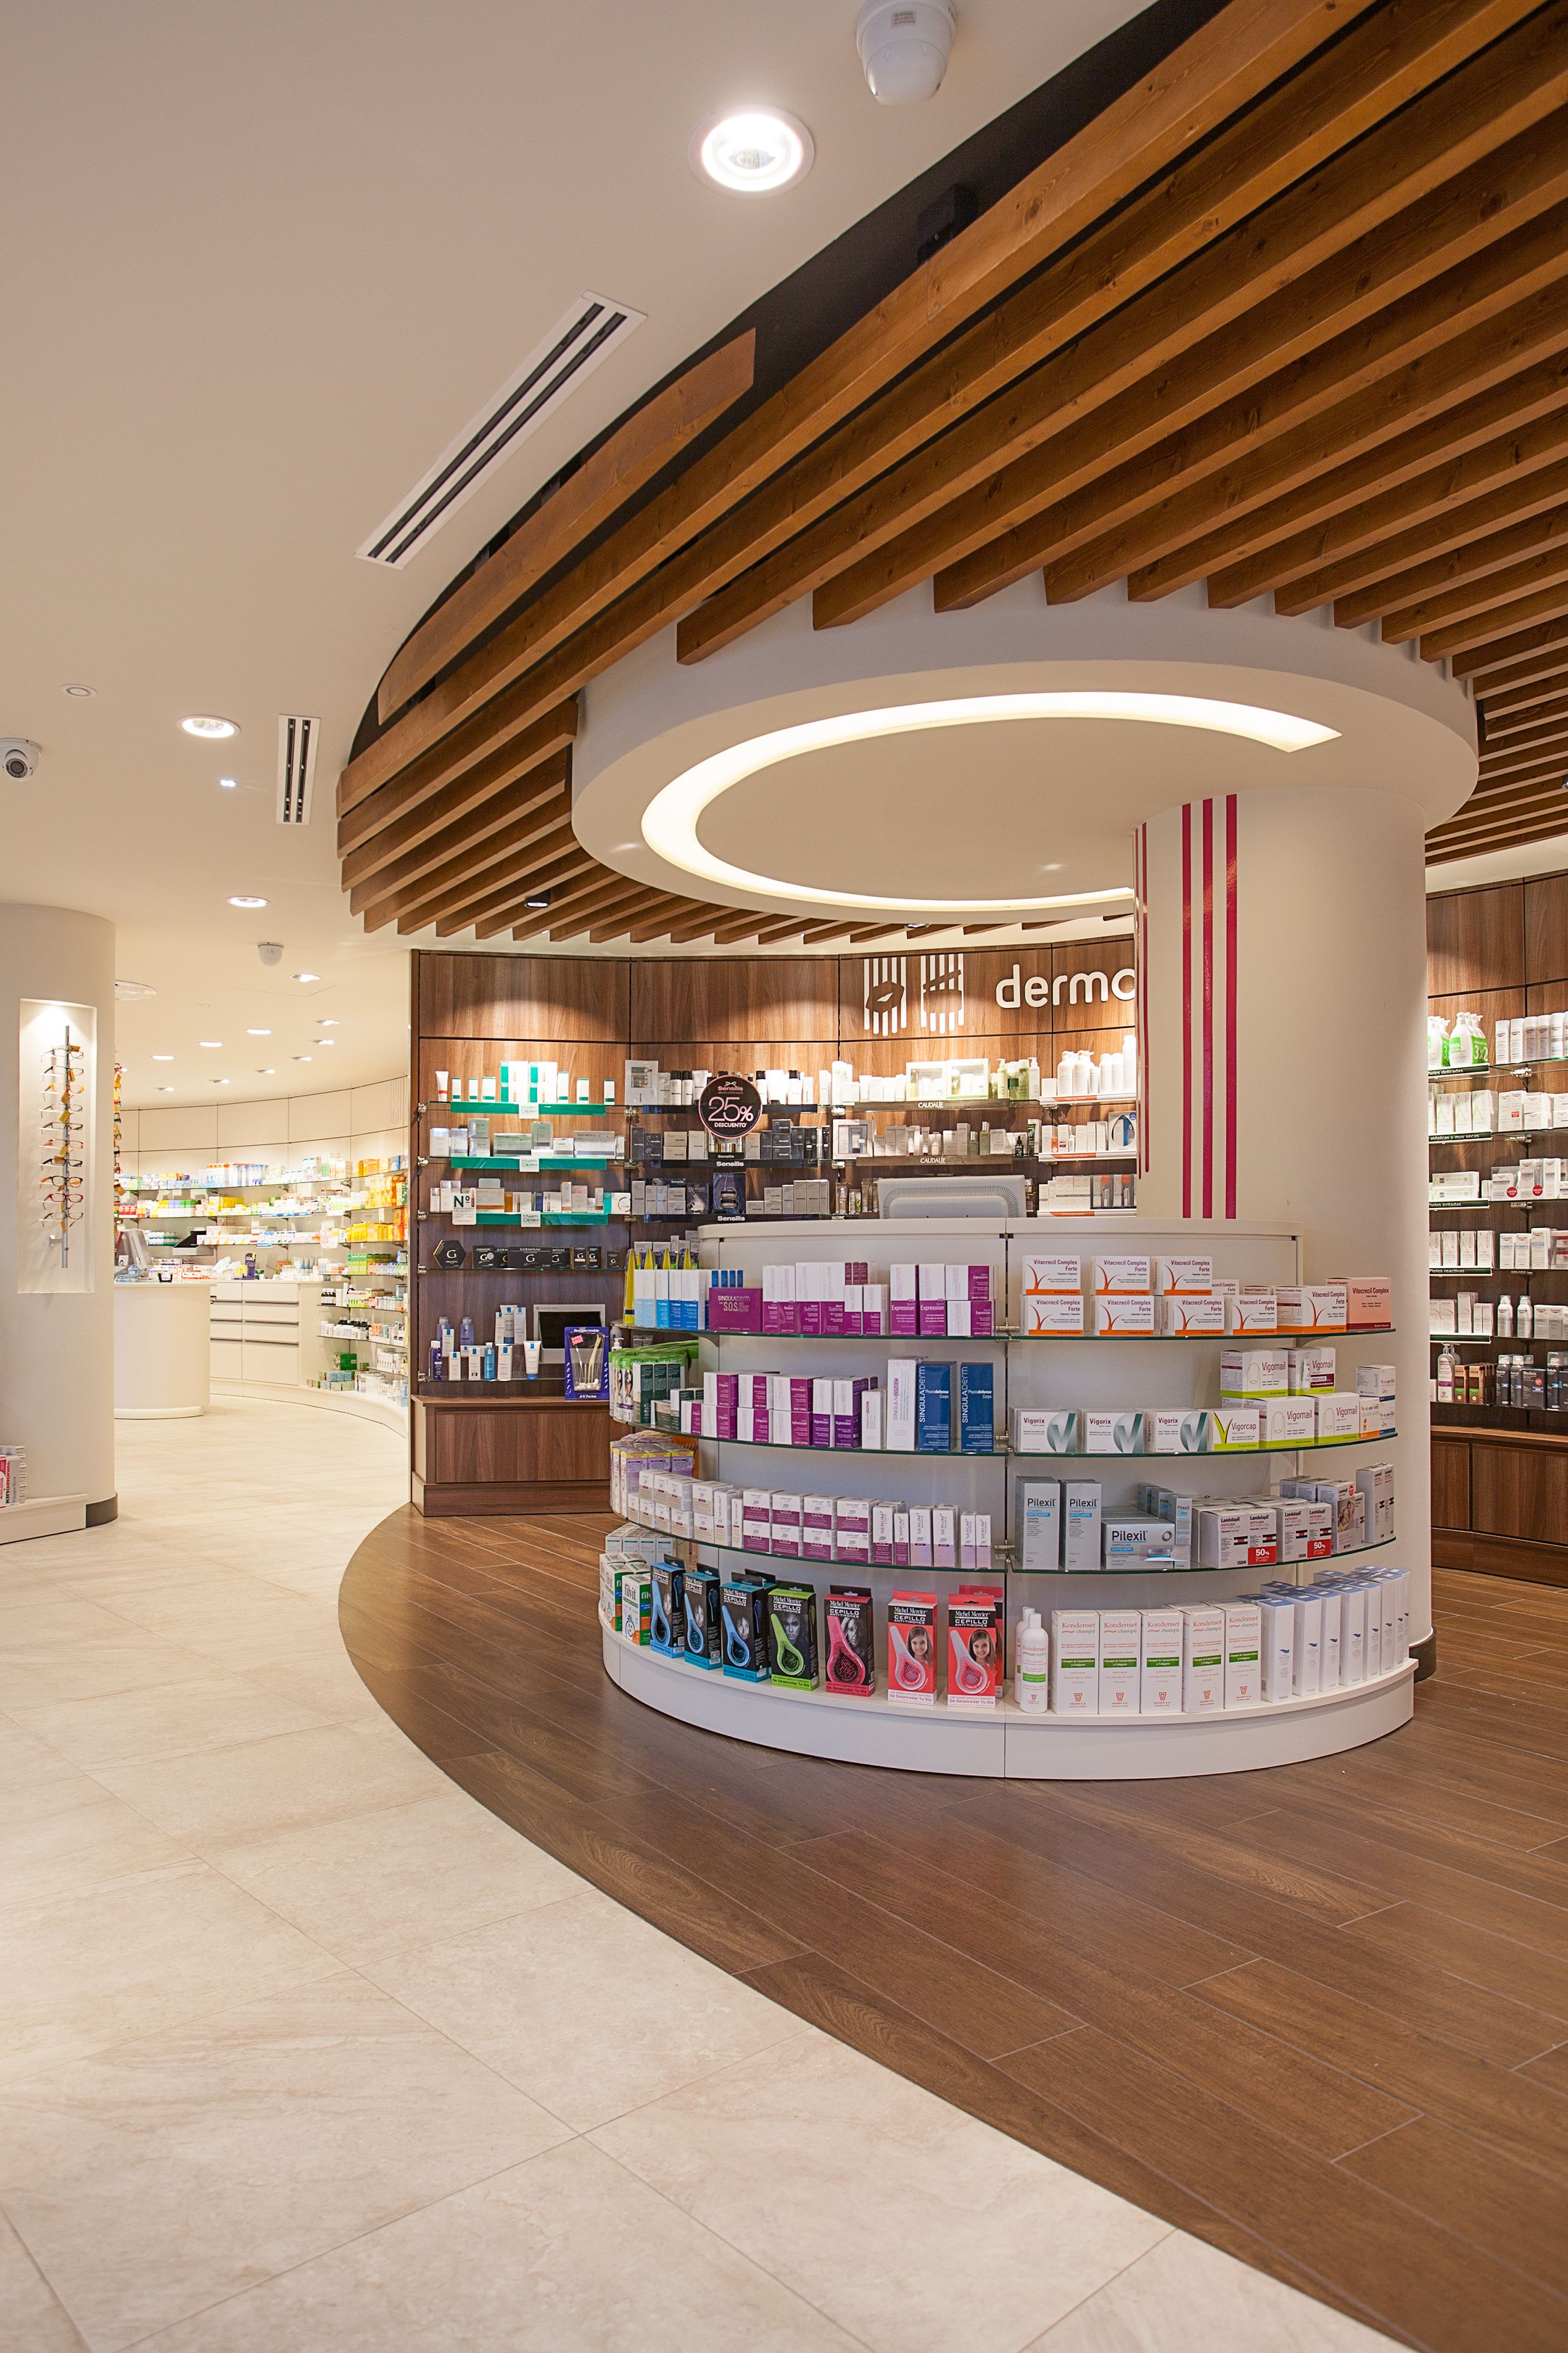 Best 25+ Pharmacy design ideas on Pinterest | Pharmacy images, Stop & shop  pharmacy and Design city